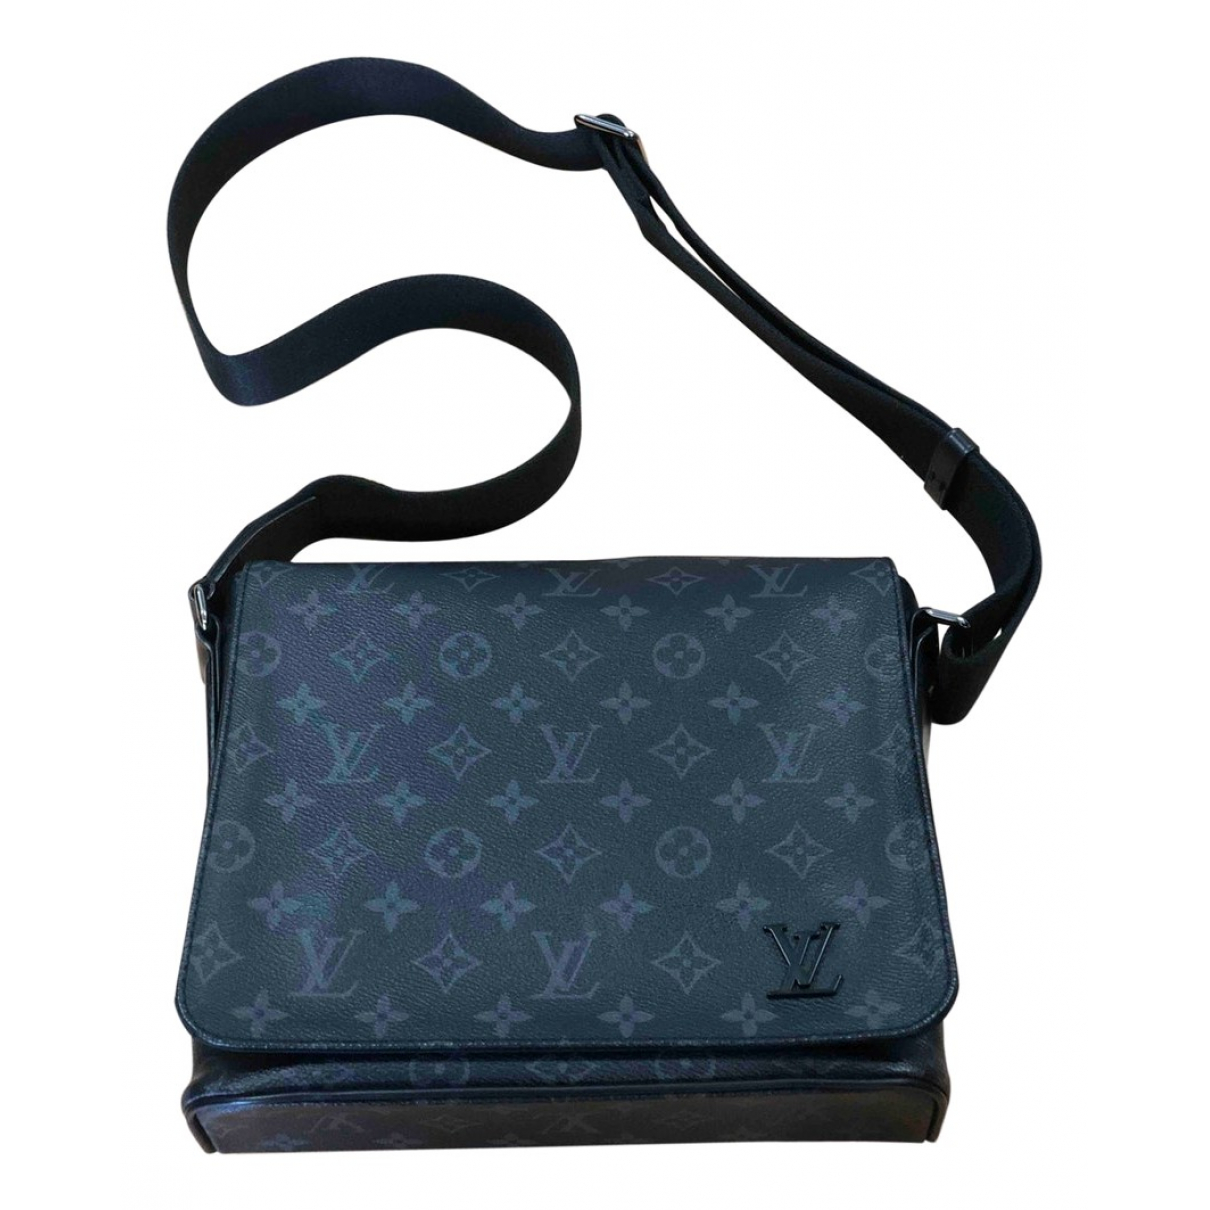 Louis Vuitton District Anthracite Cloth bag for Men \N